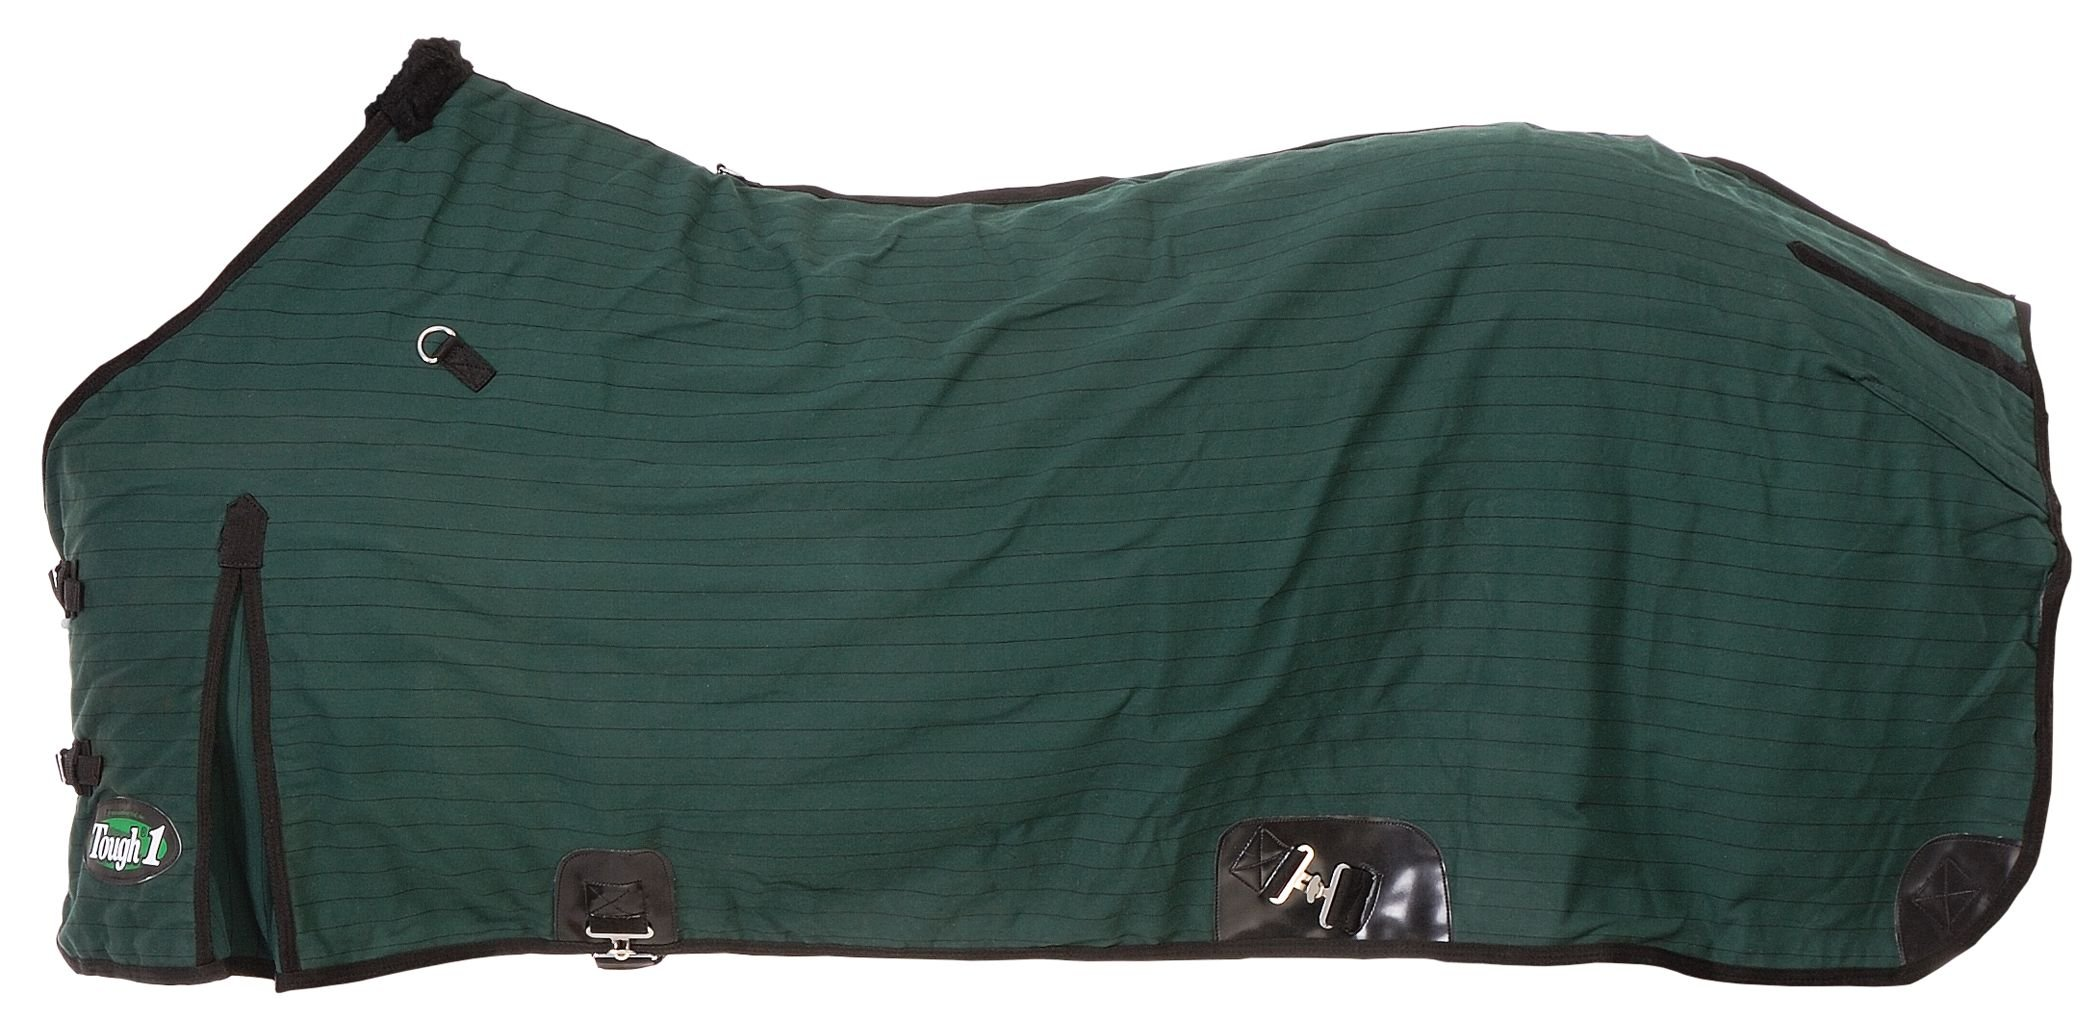 Tough 1 Storm-Buster West Coast Blanket, Green/Hunter, 72-Inch by Tough 1